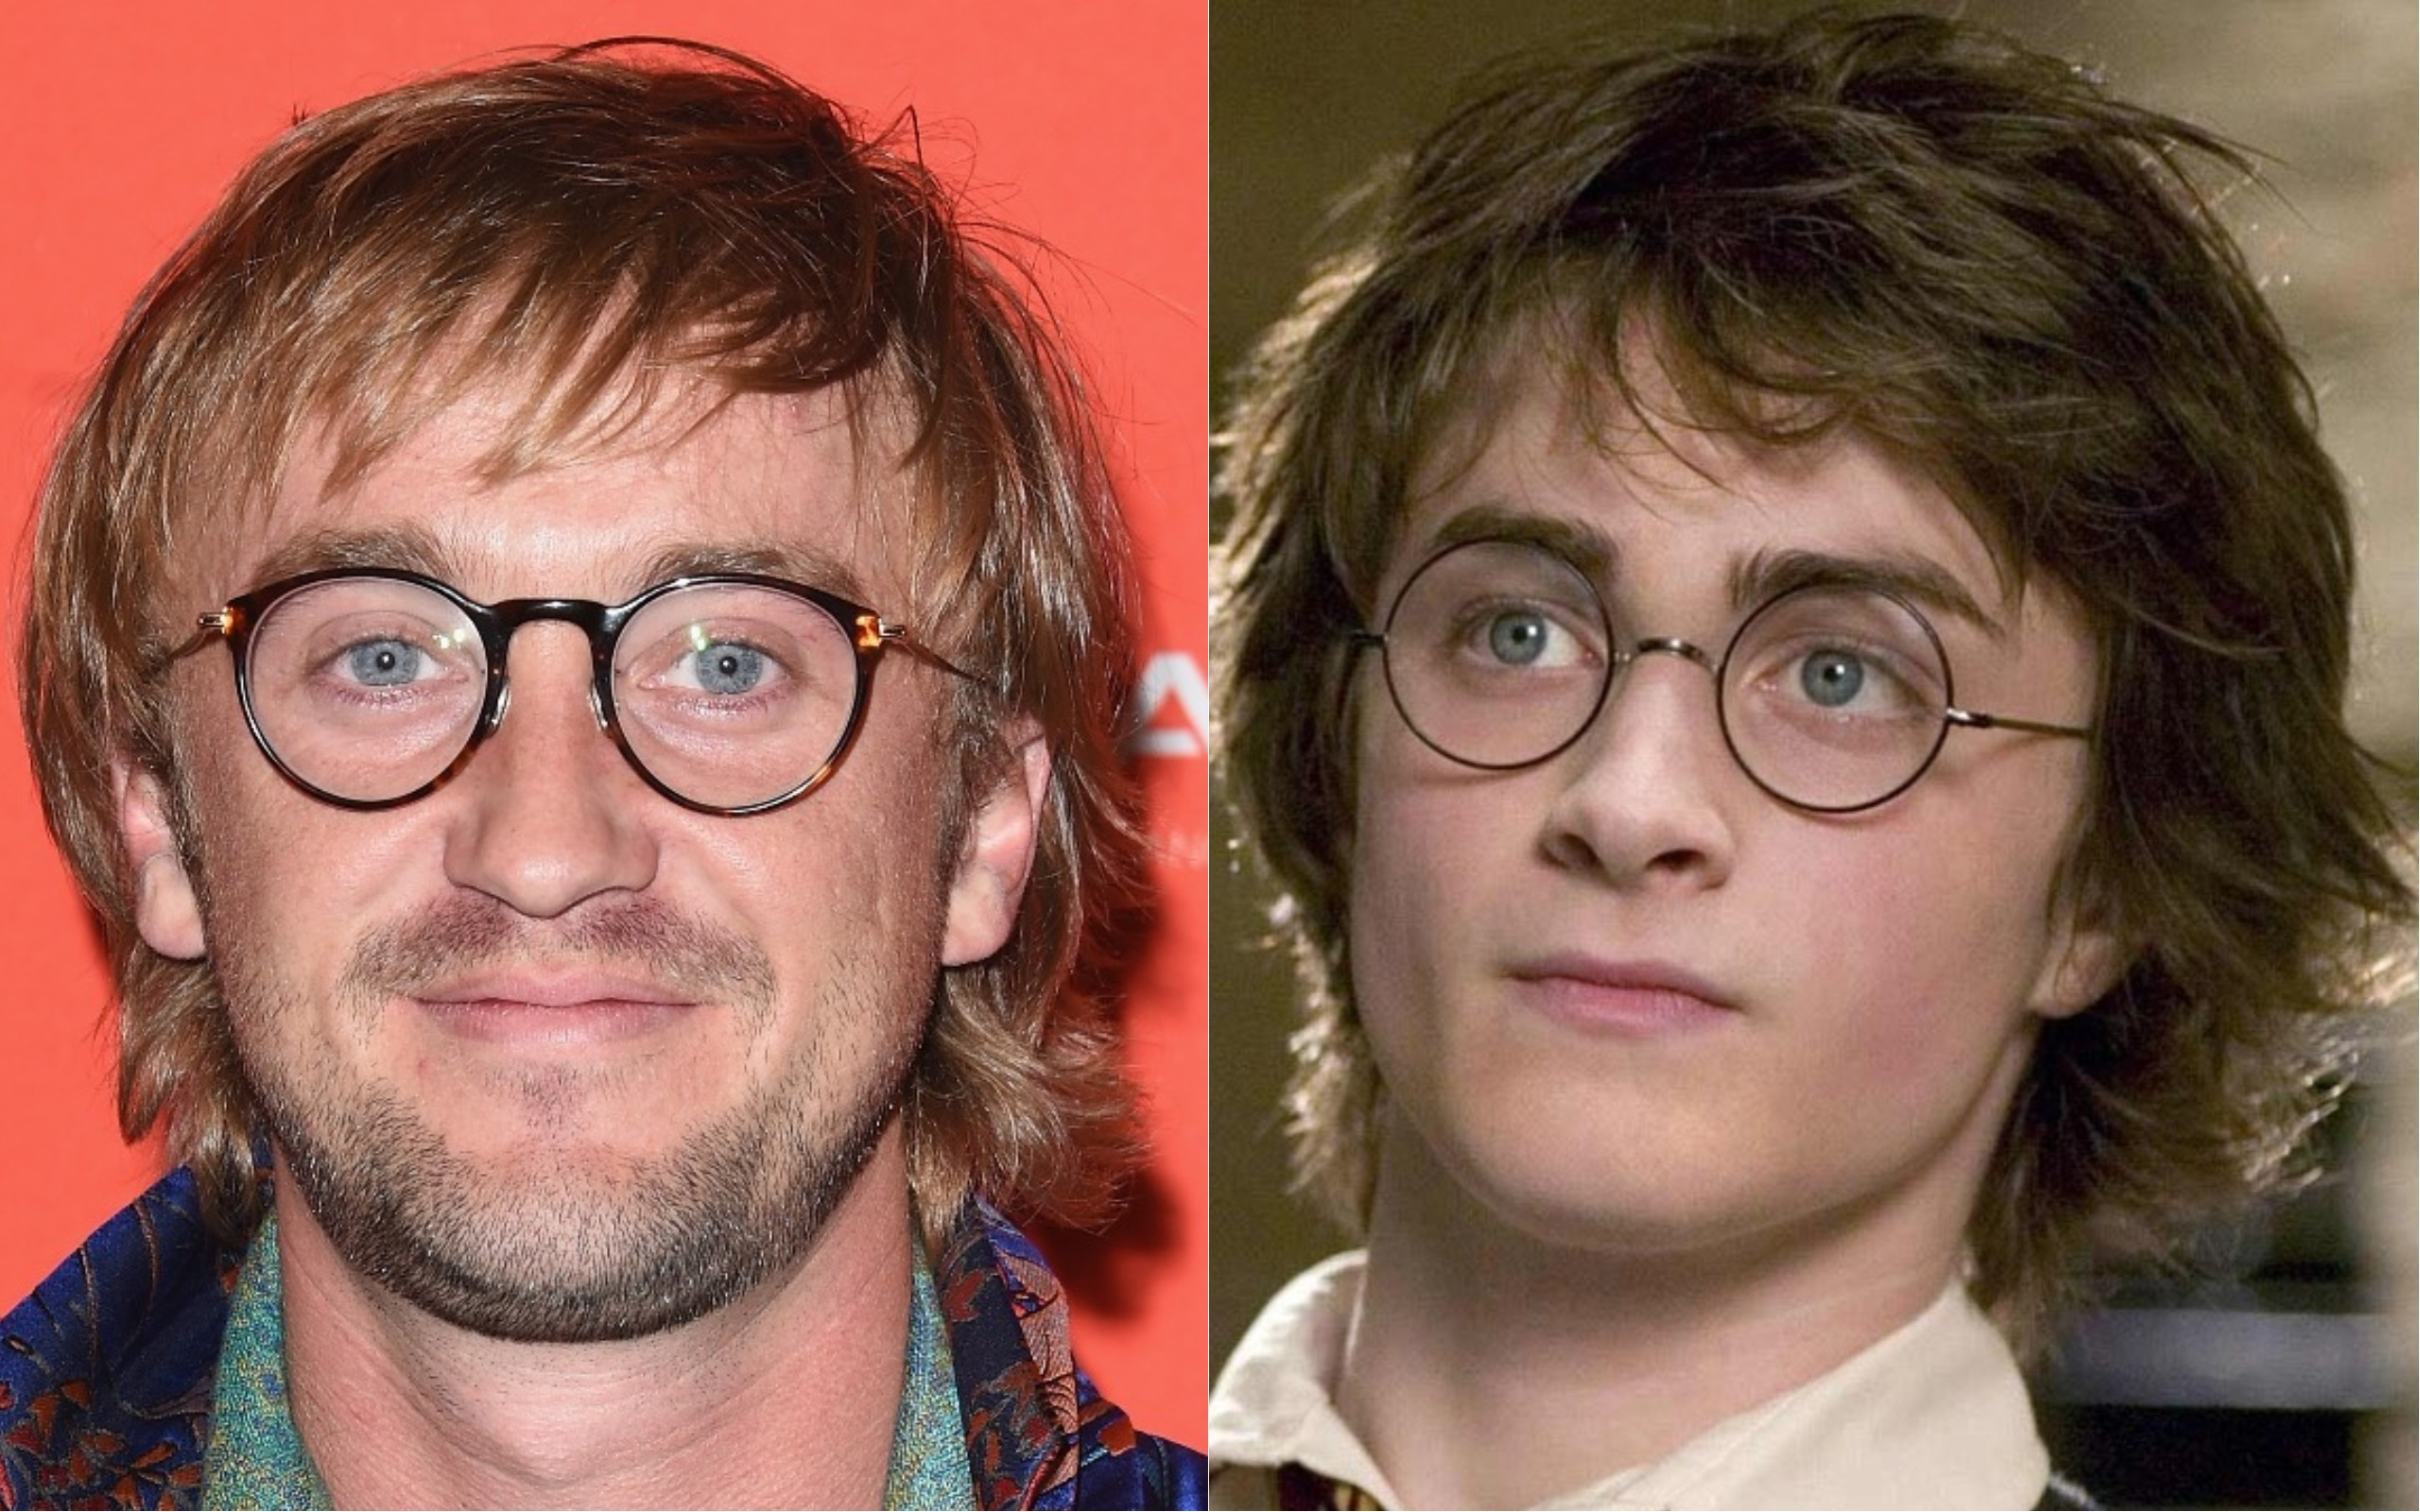 FYI: Tom Felton now looks like Harry Potter from an alternate universe